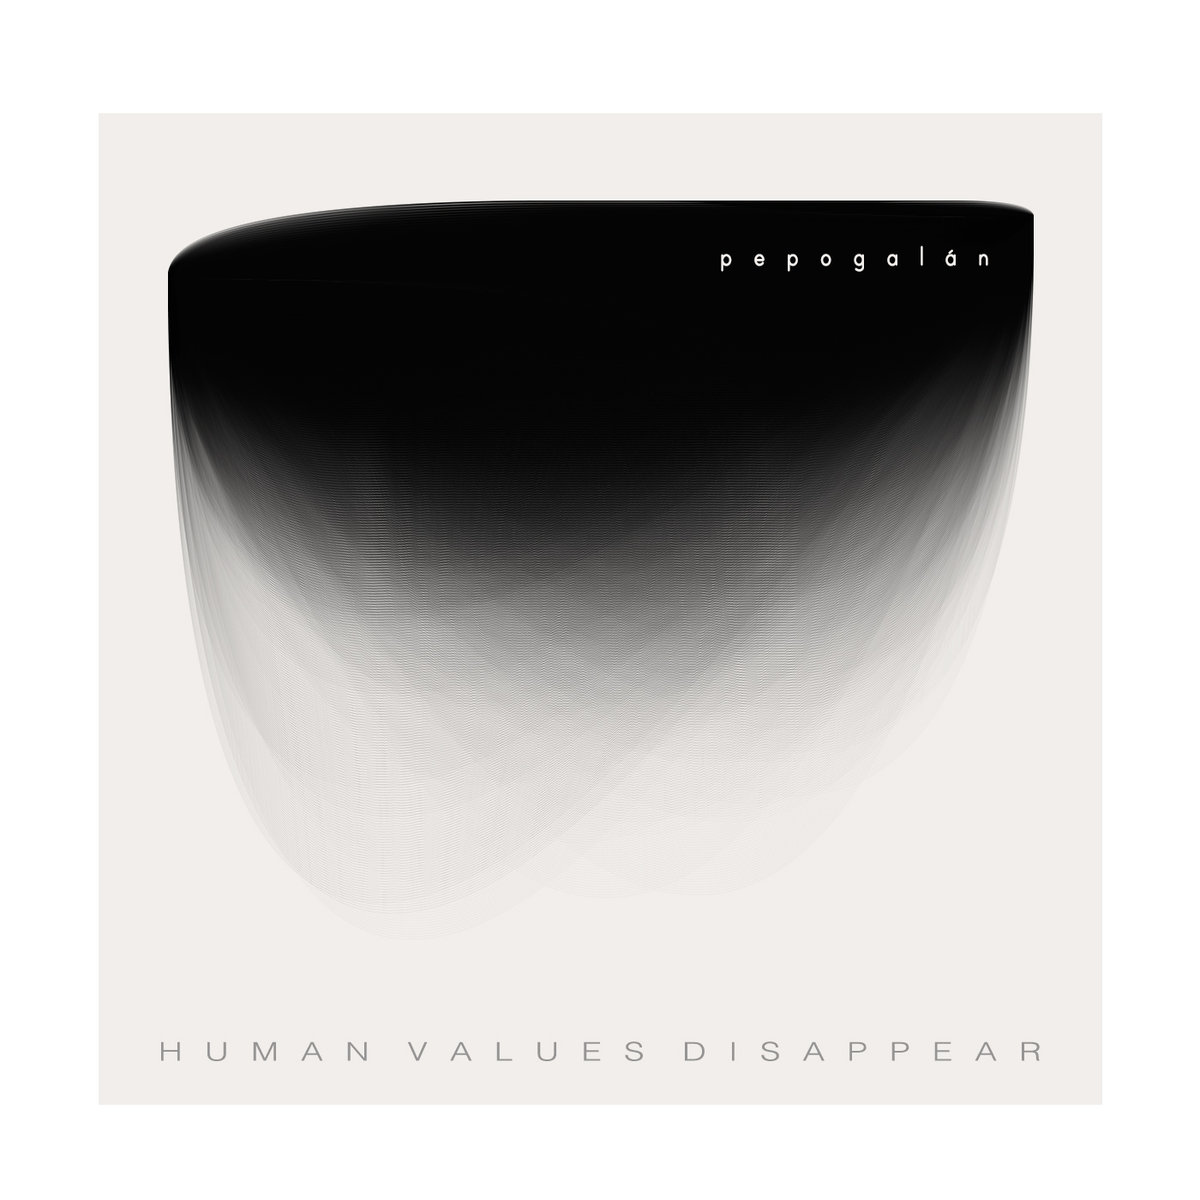 HUMAN VALUES DISAPPEAR